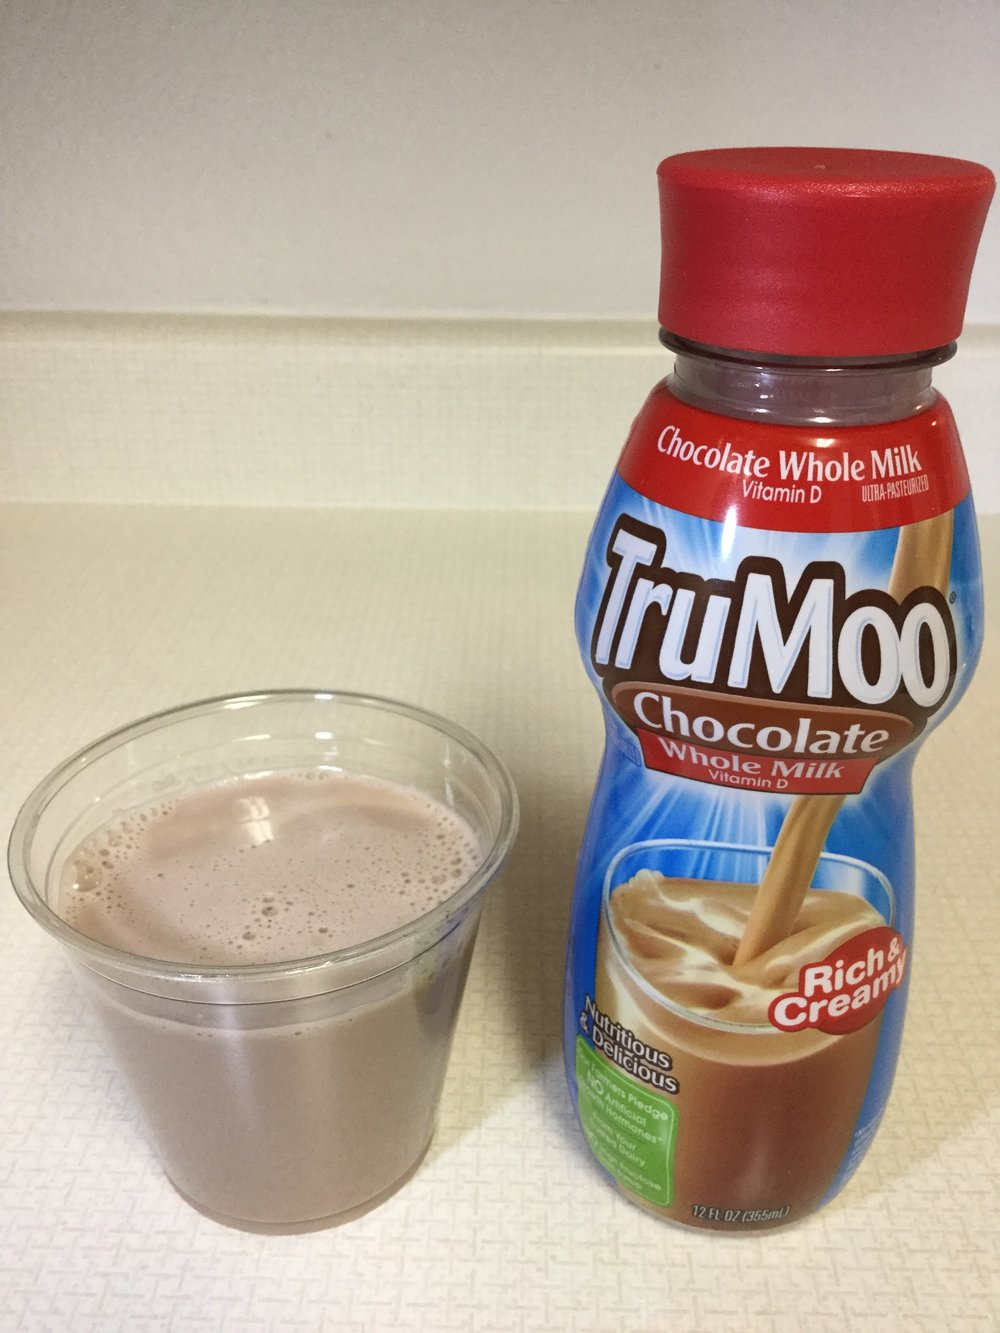 TruMoo Chocolate Whole Milk — afoolzerrand.com